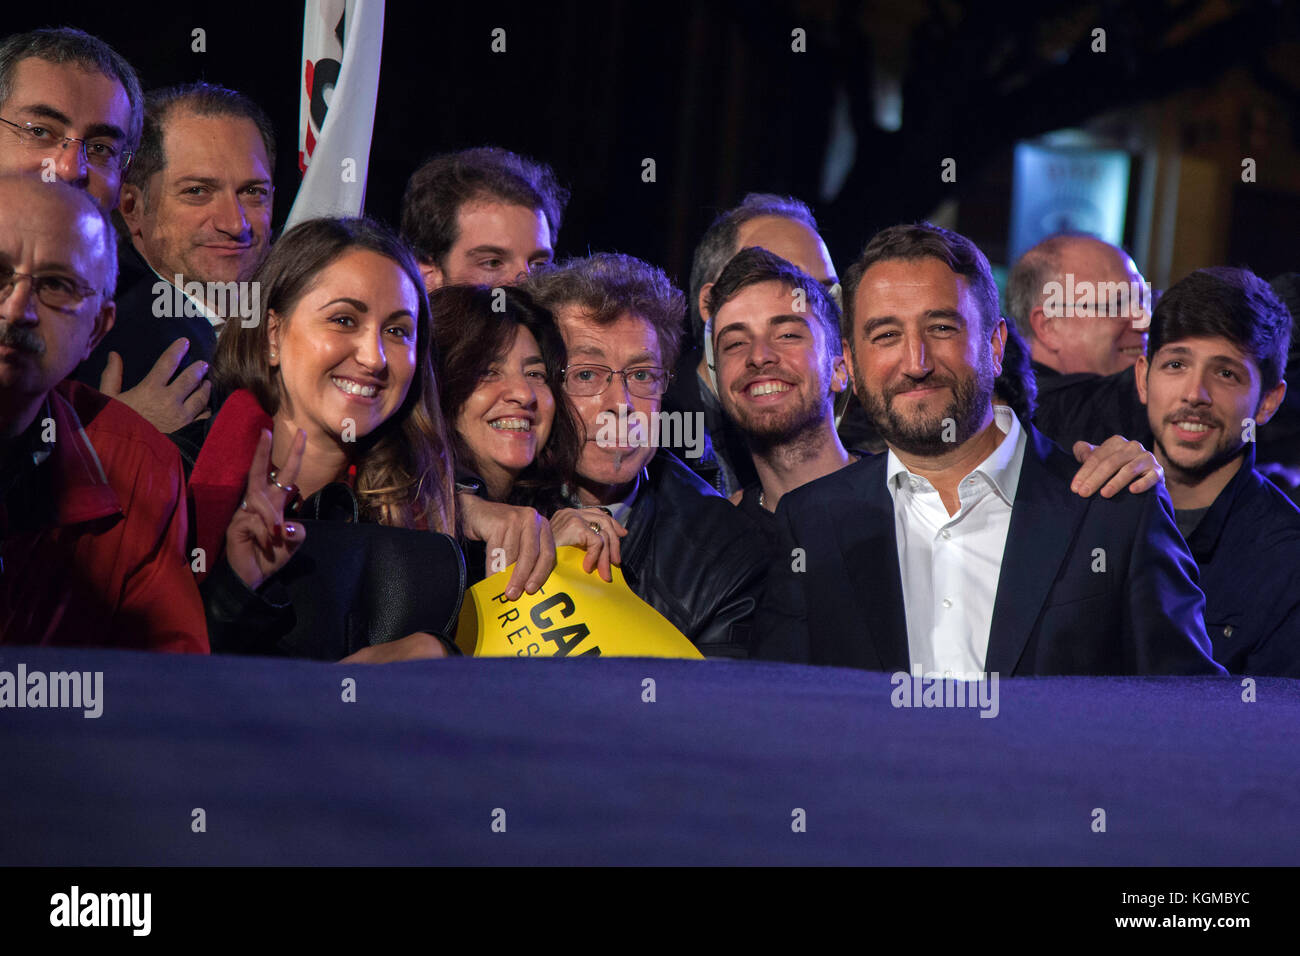 Giancarlo Cancelleri (Five Stars Movement) speaks during a electoral campaign on November 3 in Palermo, Italy. Stock Photo